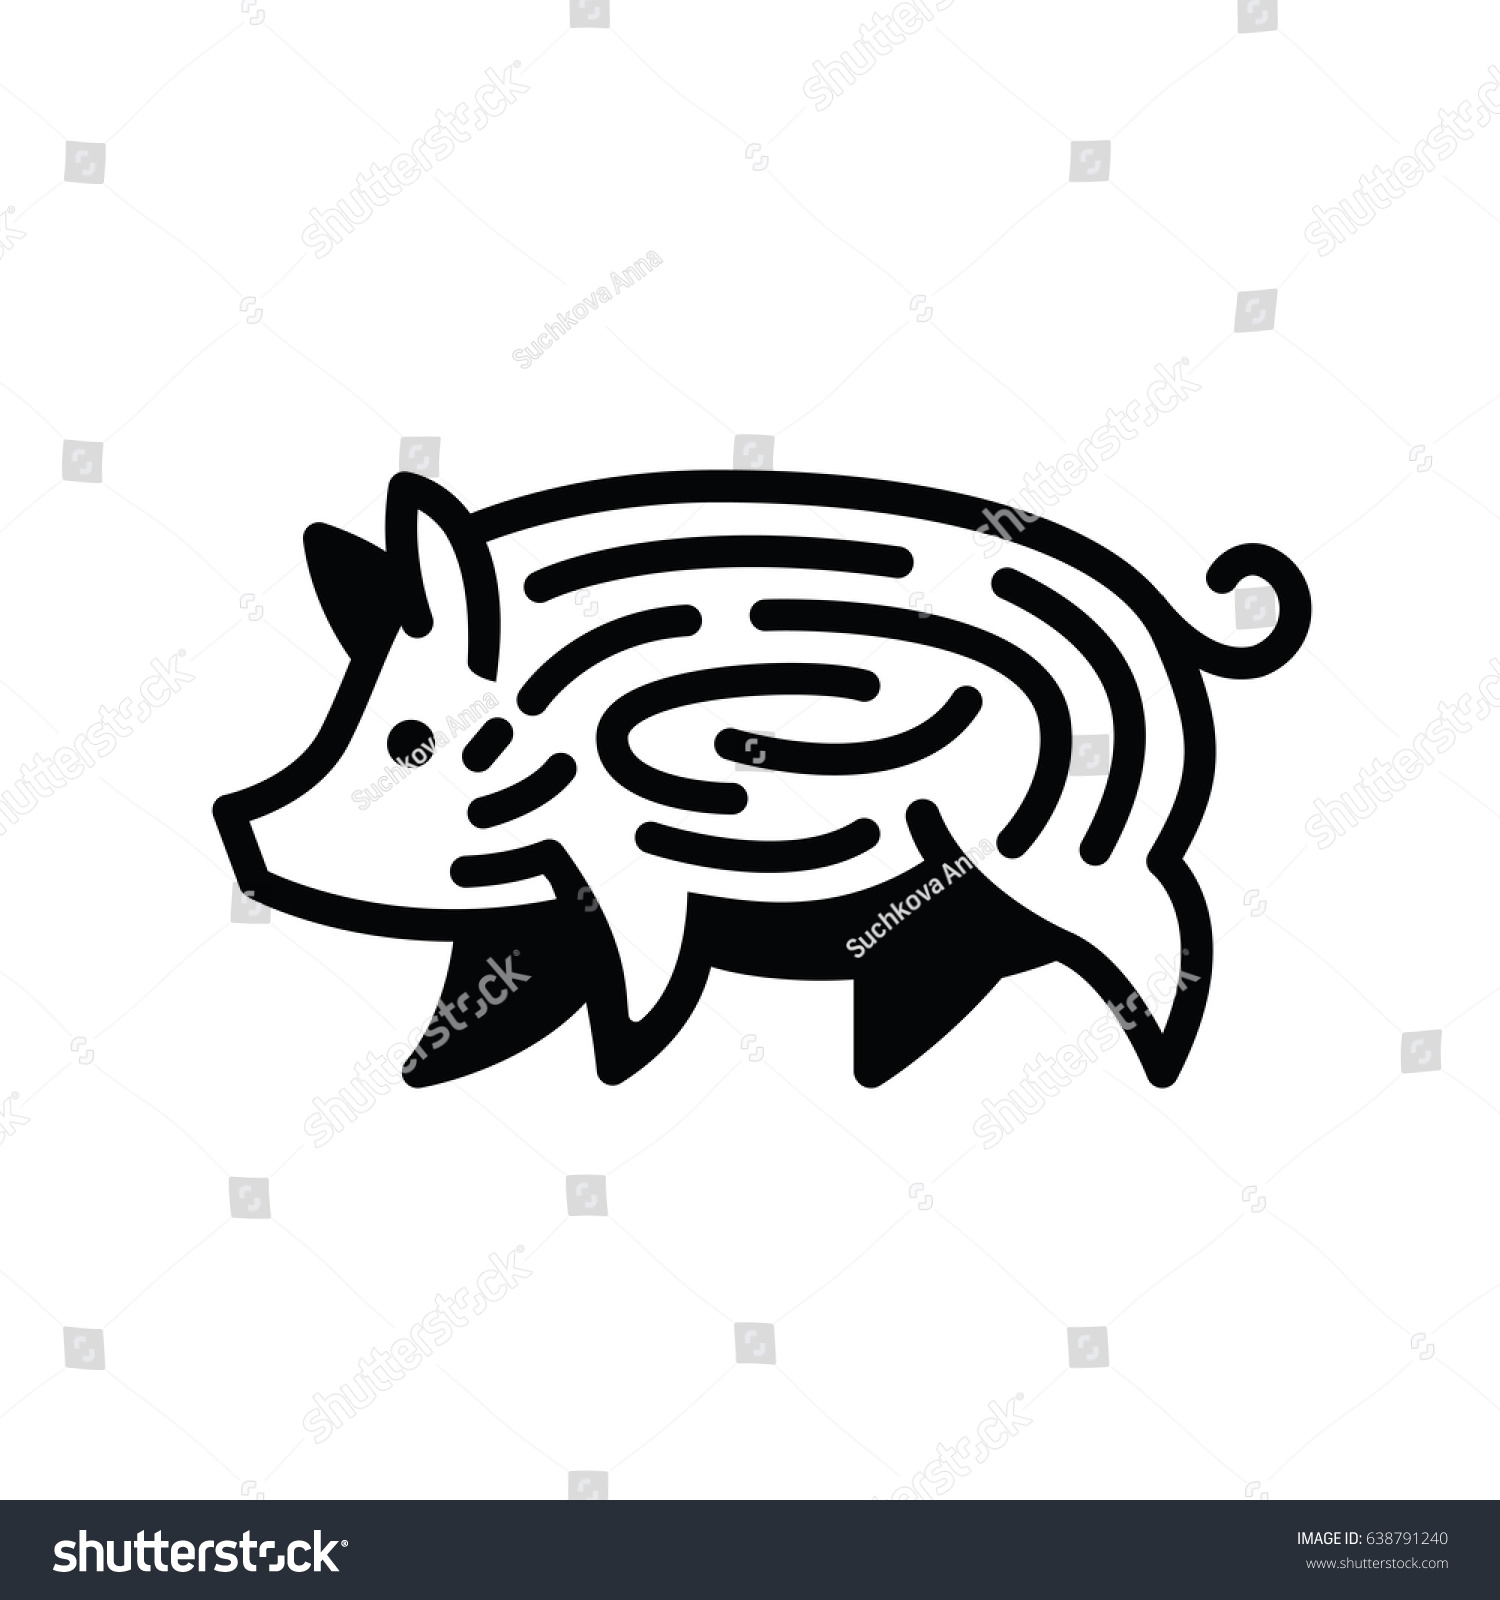 linear black drawing pig swine stylized stock vector royalty free